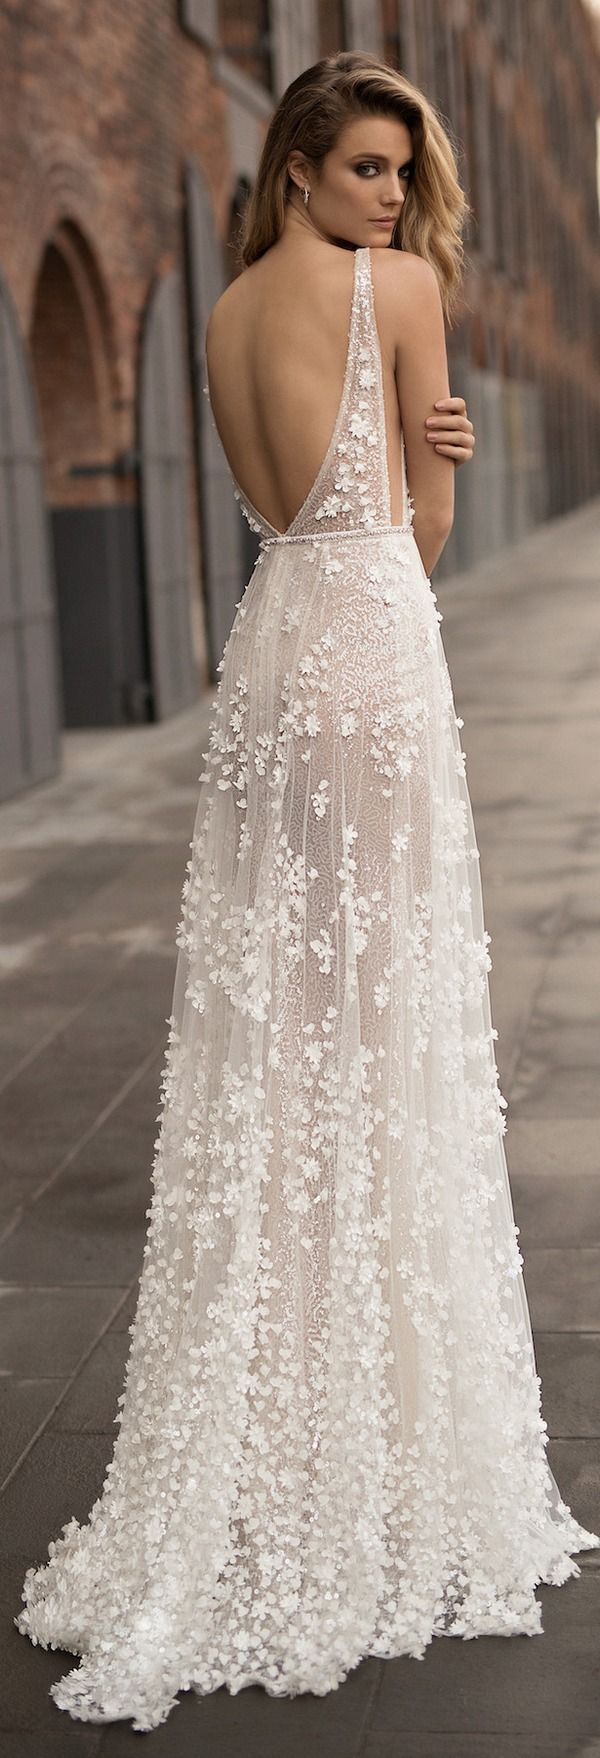 Berta Spring Wedding Dresses 2018 | Deer Pearl Flowers embroider this entire sheath silhouette wedding gown to create a sweet, soft, romantic bridal gown design. The open back and side slits add the perfect touch of sexiness and style